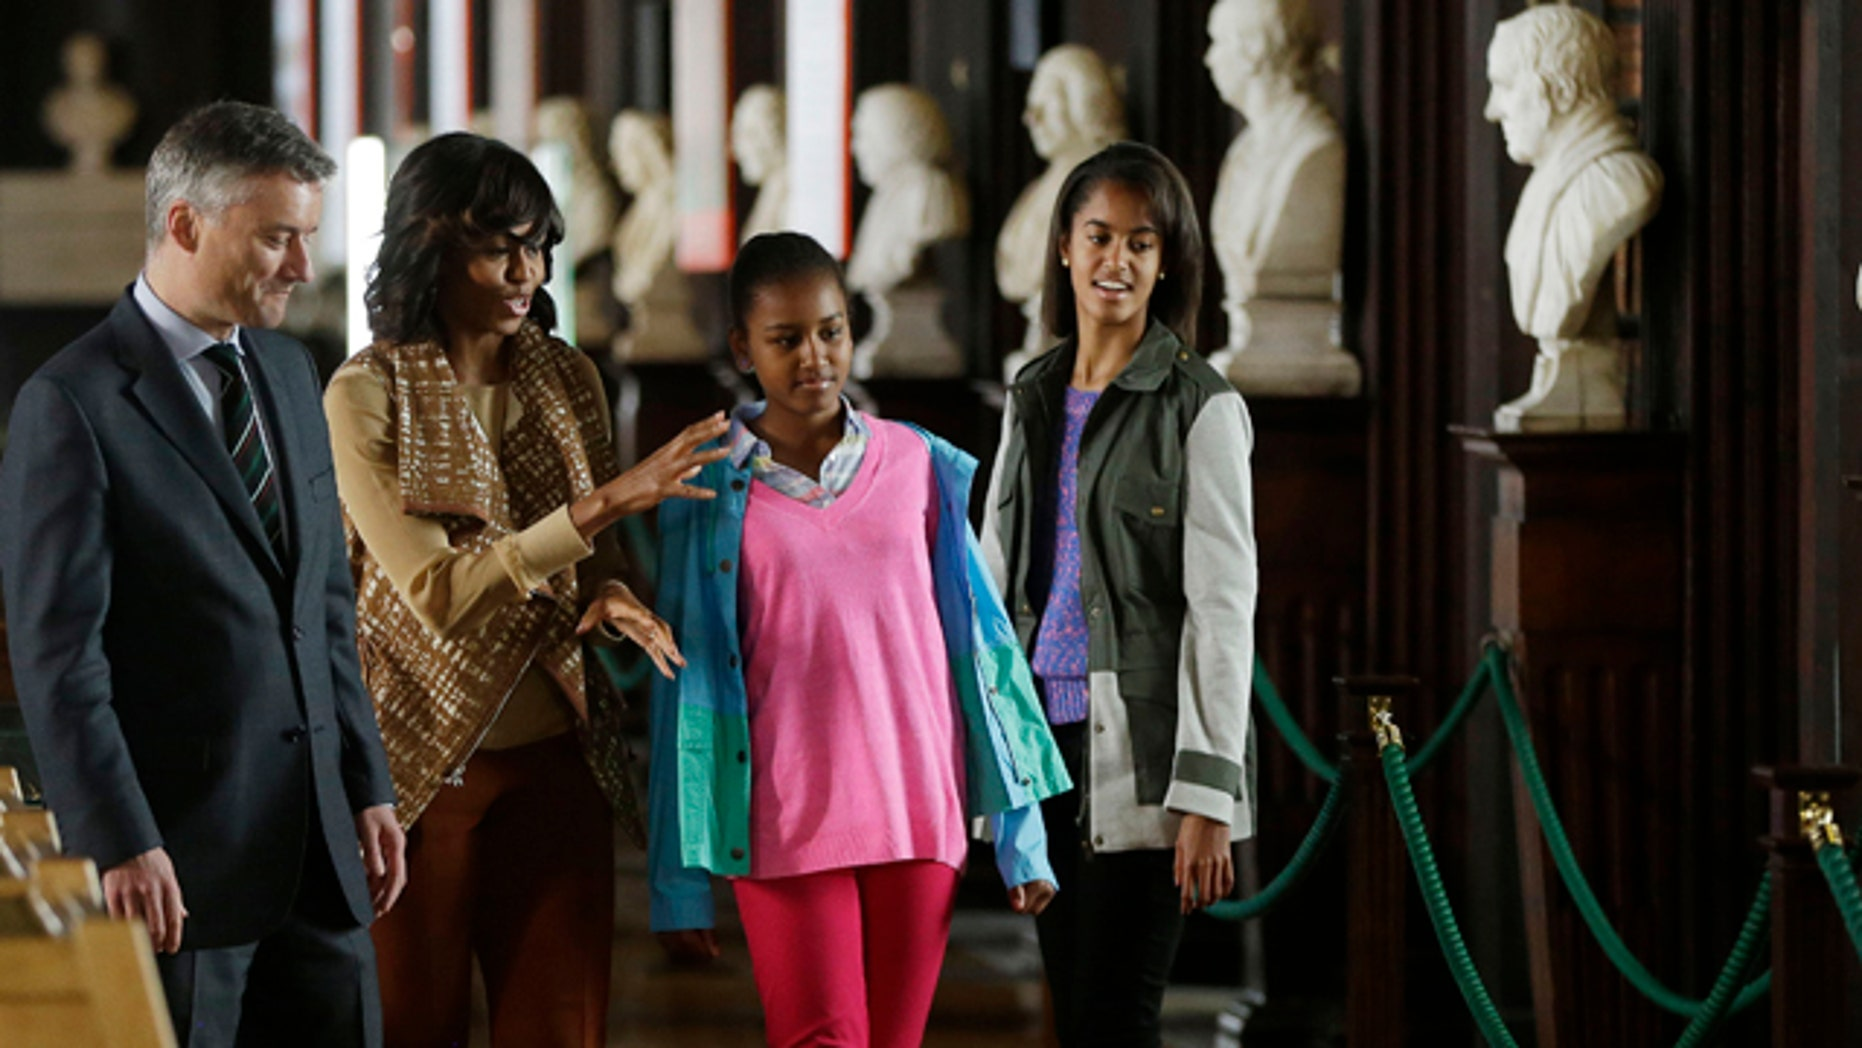 June 17, 2013: US first lady Michelle Obama, center, with her daughters Sasha, and Malia, are escorted by Patrick Prendergast, far left, President/Provost of Trinity College, during their visit to the Old Library at Trinity College, in Dublin, Ireland.